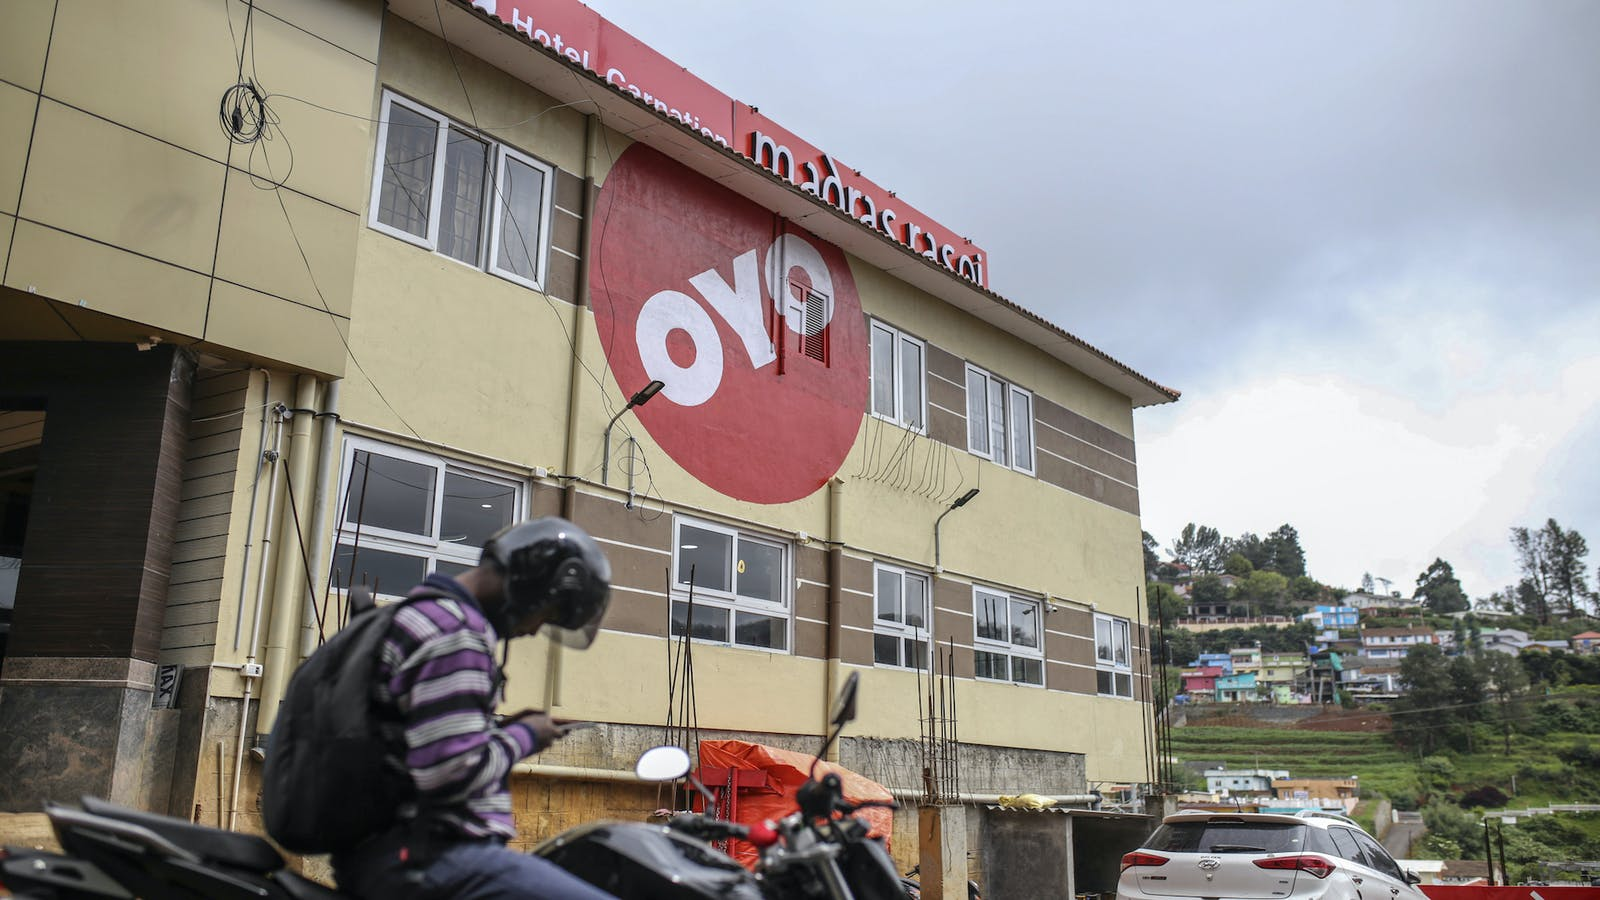 The logo of OYO Rooms is displayed on a hotel in Tamil Nadu, India. Photo by Bloomberg.